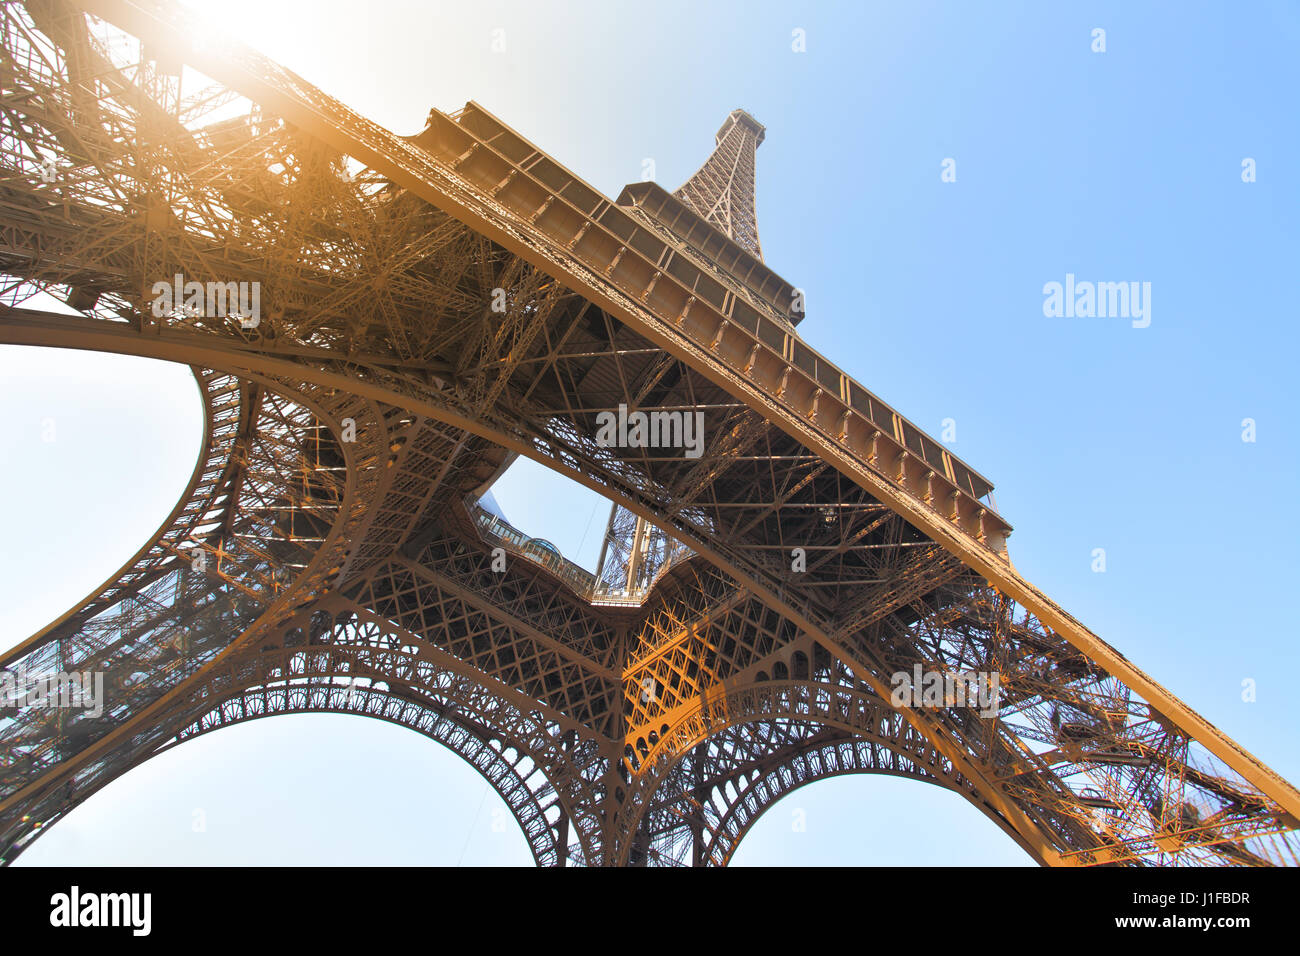 Angle shot of The Eiffel tower in Paris, France - Stock Image